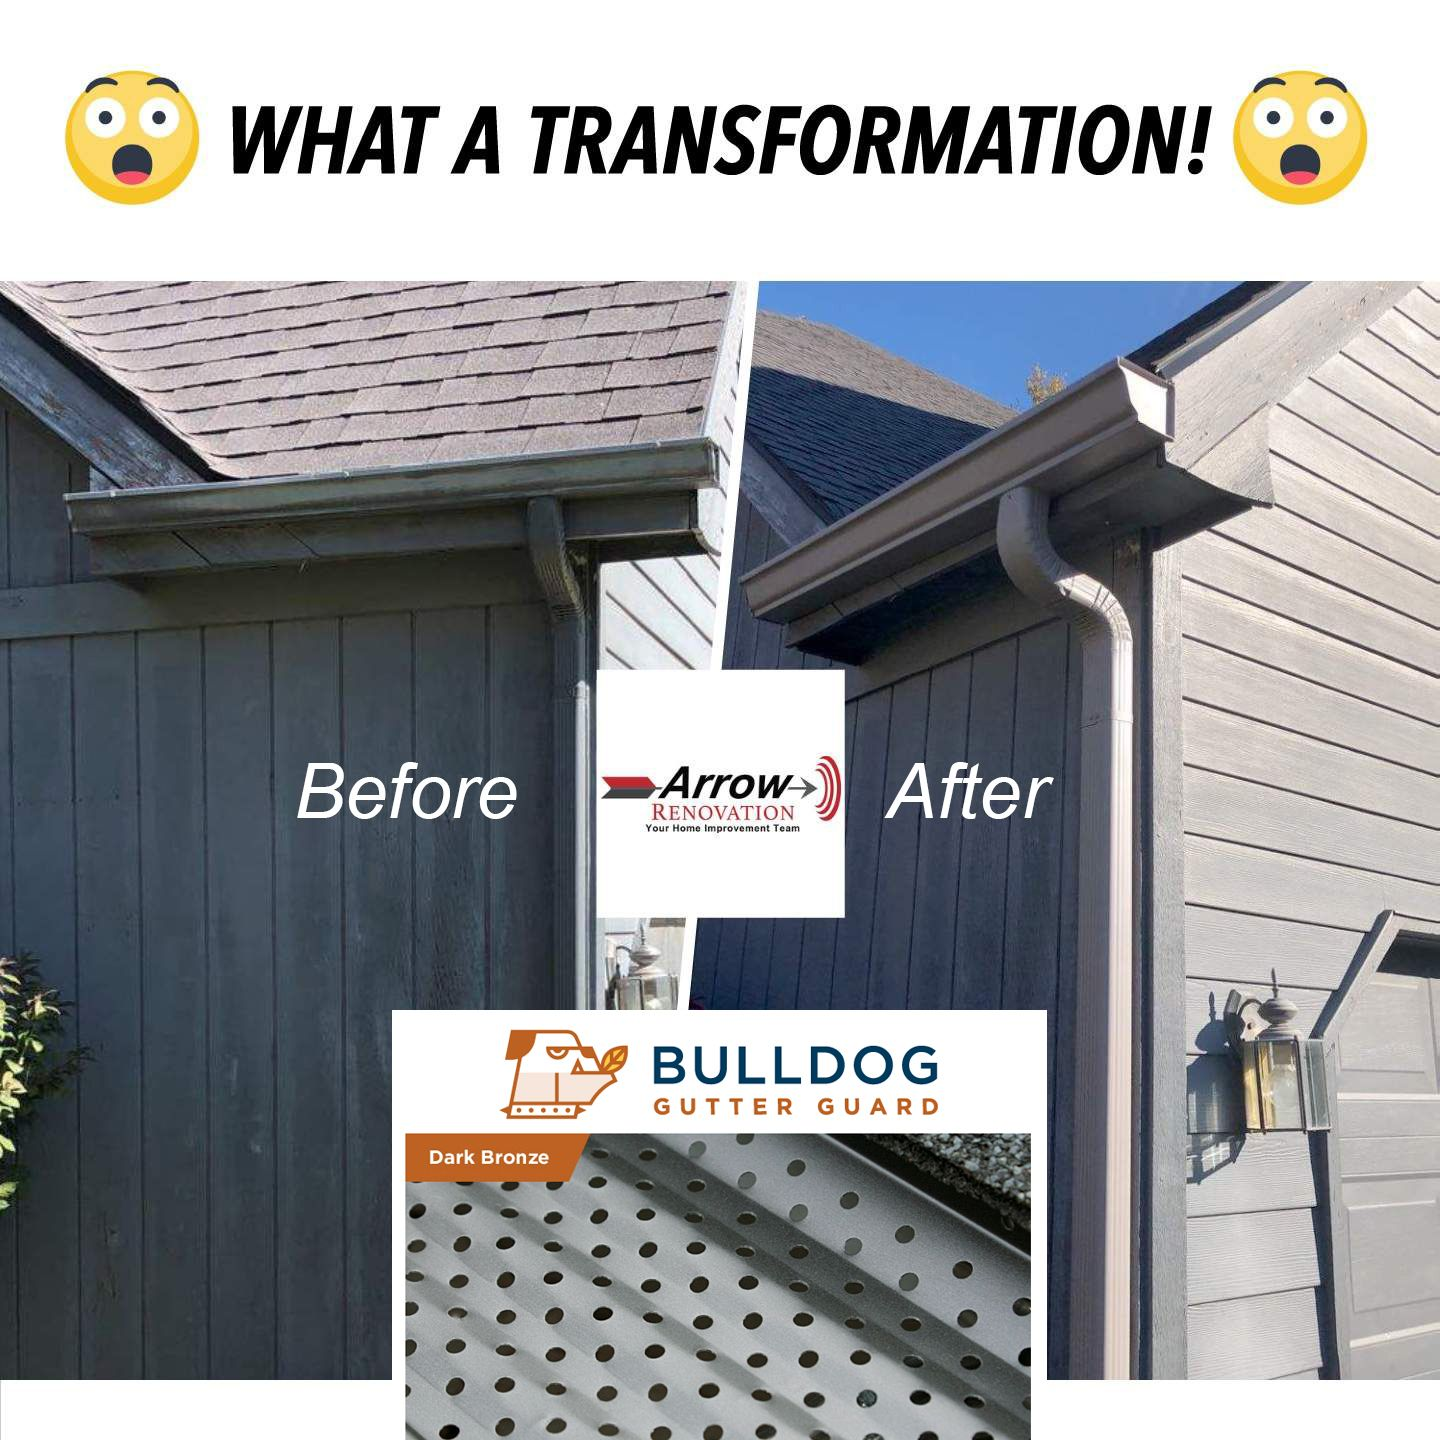 ARE LEAVES STILL STUCK IN YOUR GUTTERS? Get Bulldog gutter